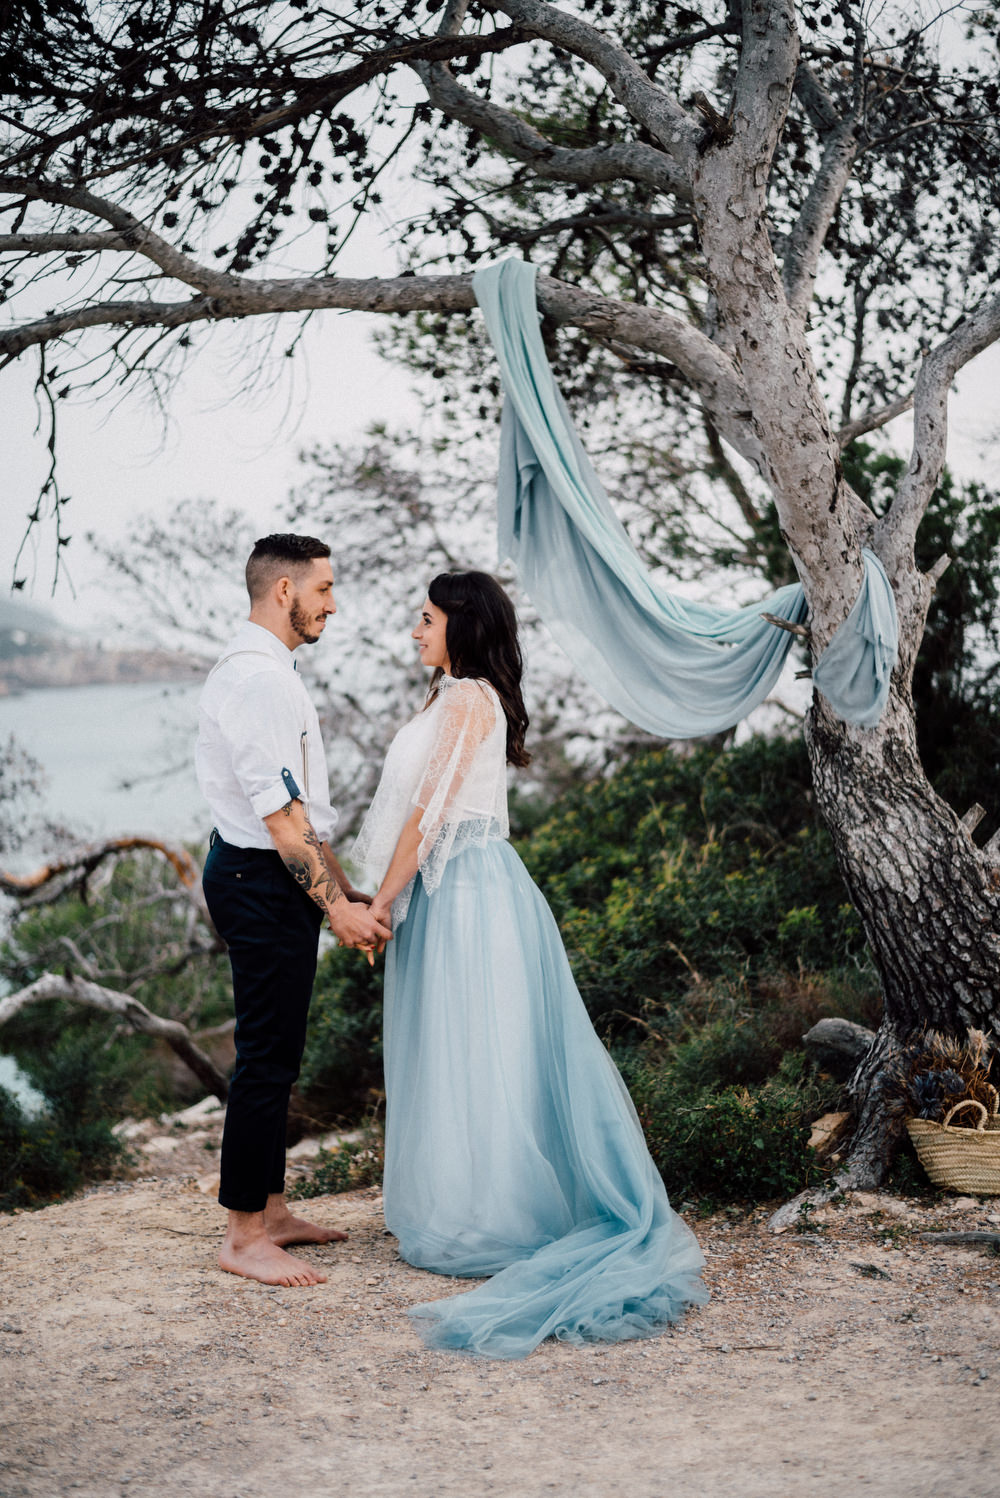 Outdoor Wild Nature Destination Spain Europe Sea Beach Styled Shoot Groom Braces Bride Blue Gown Lace Ceremony | Blue Ibiza Elopement Ideas and Surprise Proposal Serena Genovese Photography